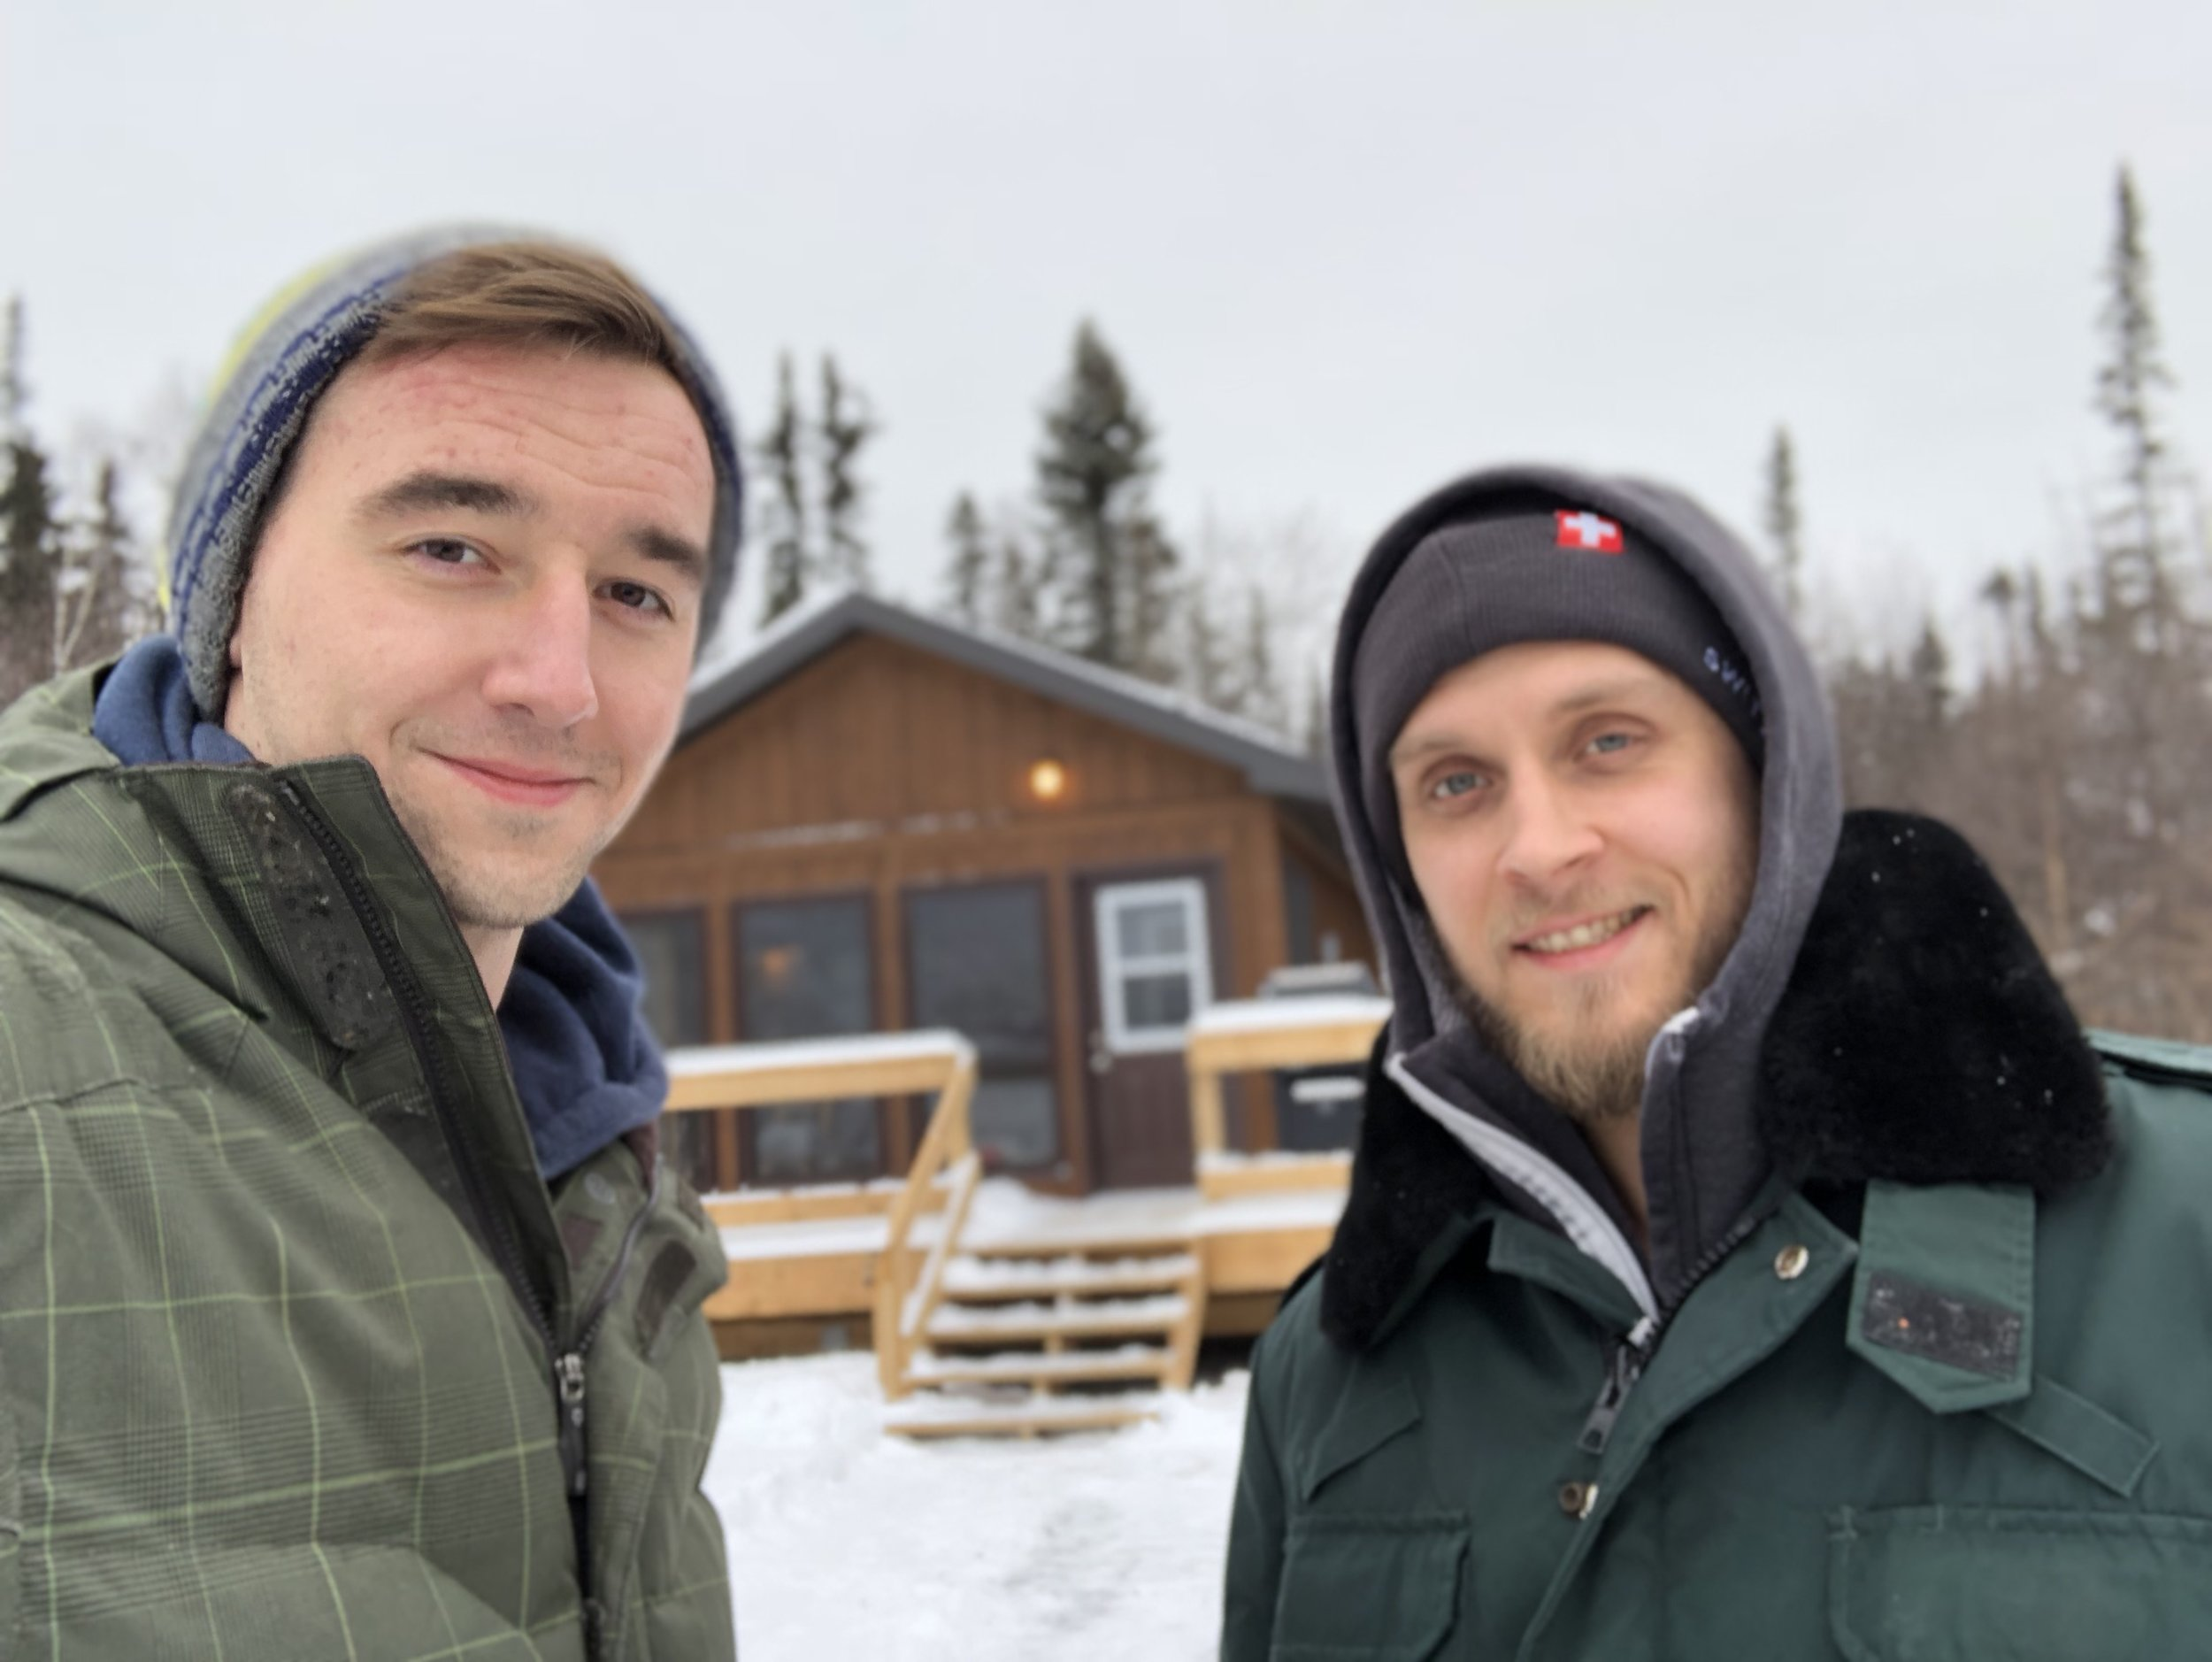 Winter Camping in Ontario is all about friendship, and it's easy to make Ontario Provincial Parks Reservations